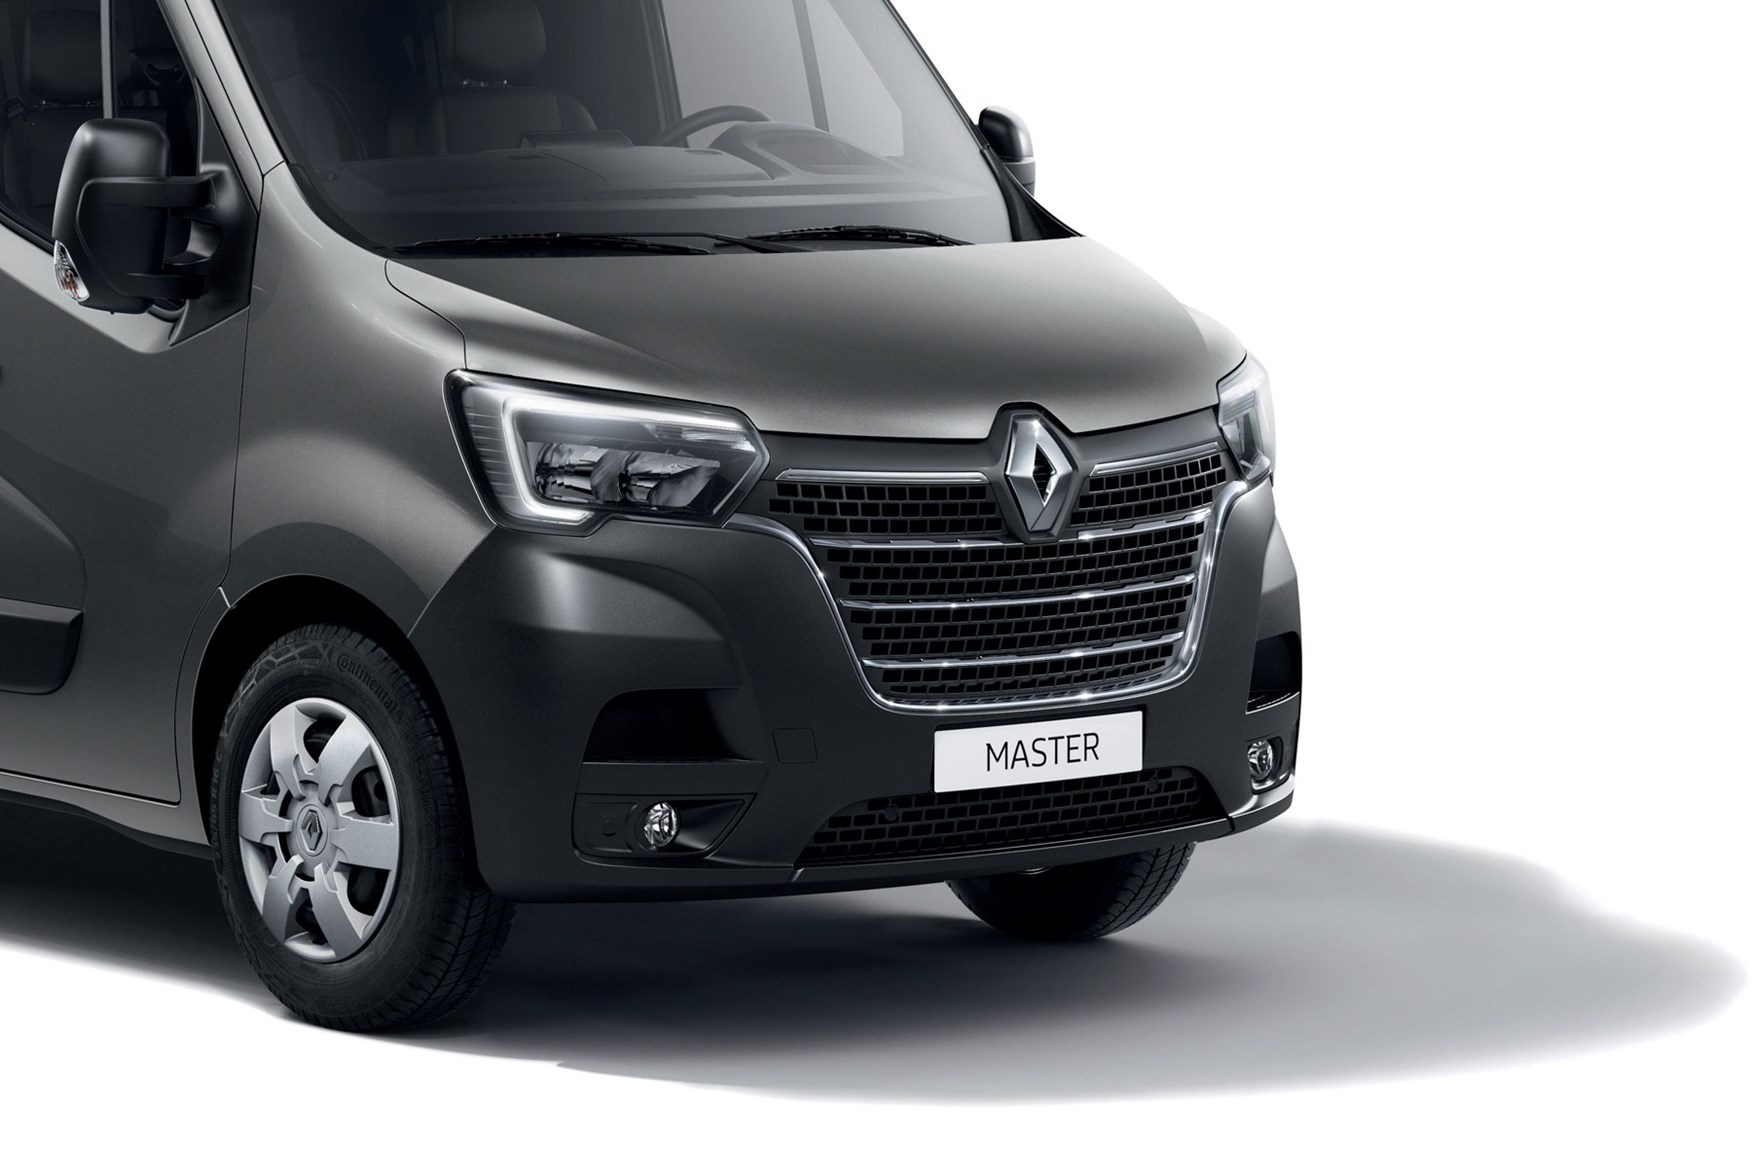 2019 Renault Master facelift - full details of new-look ...